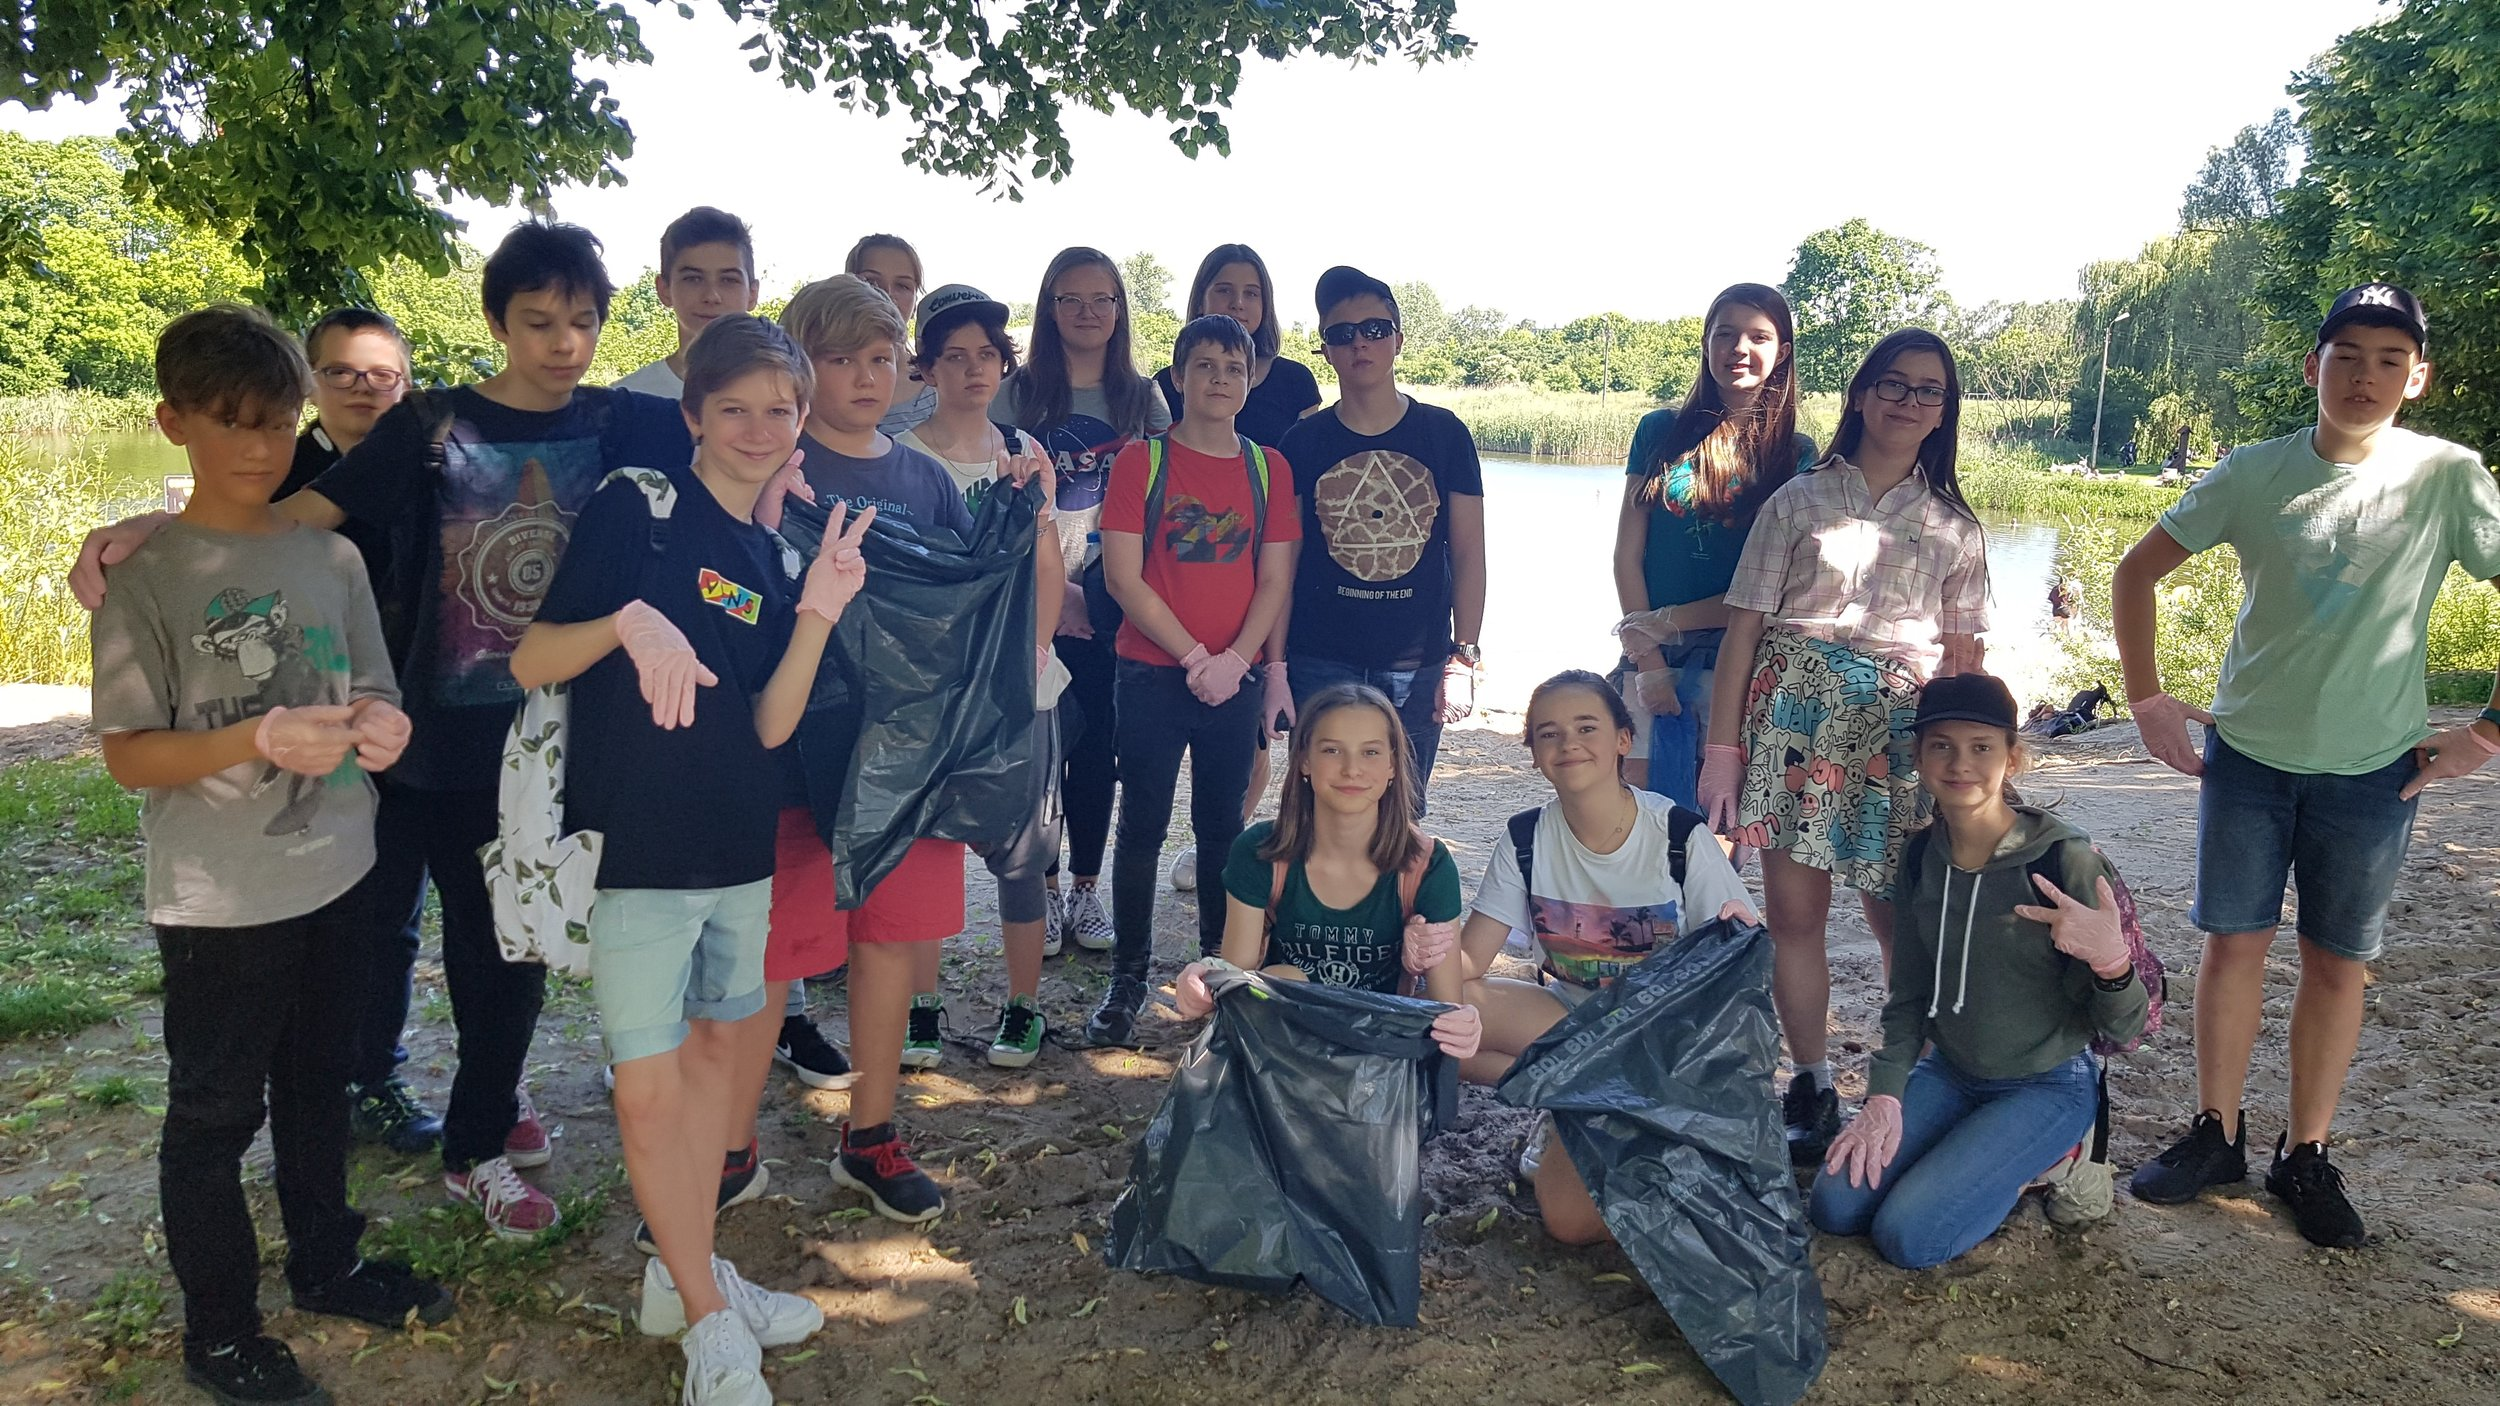 Global Scholars students in Warsaw inspired neighbors to join their lake cleanup